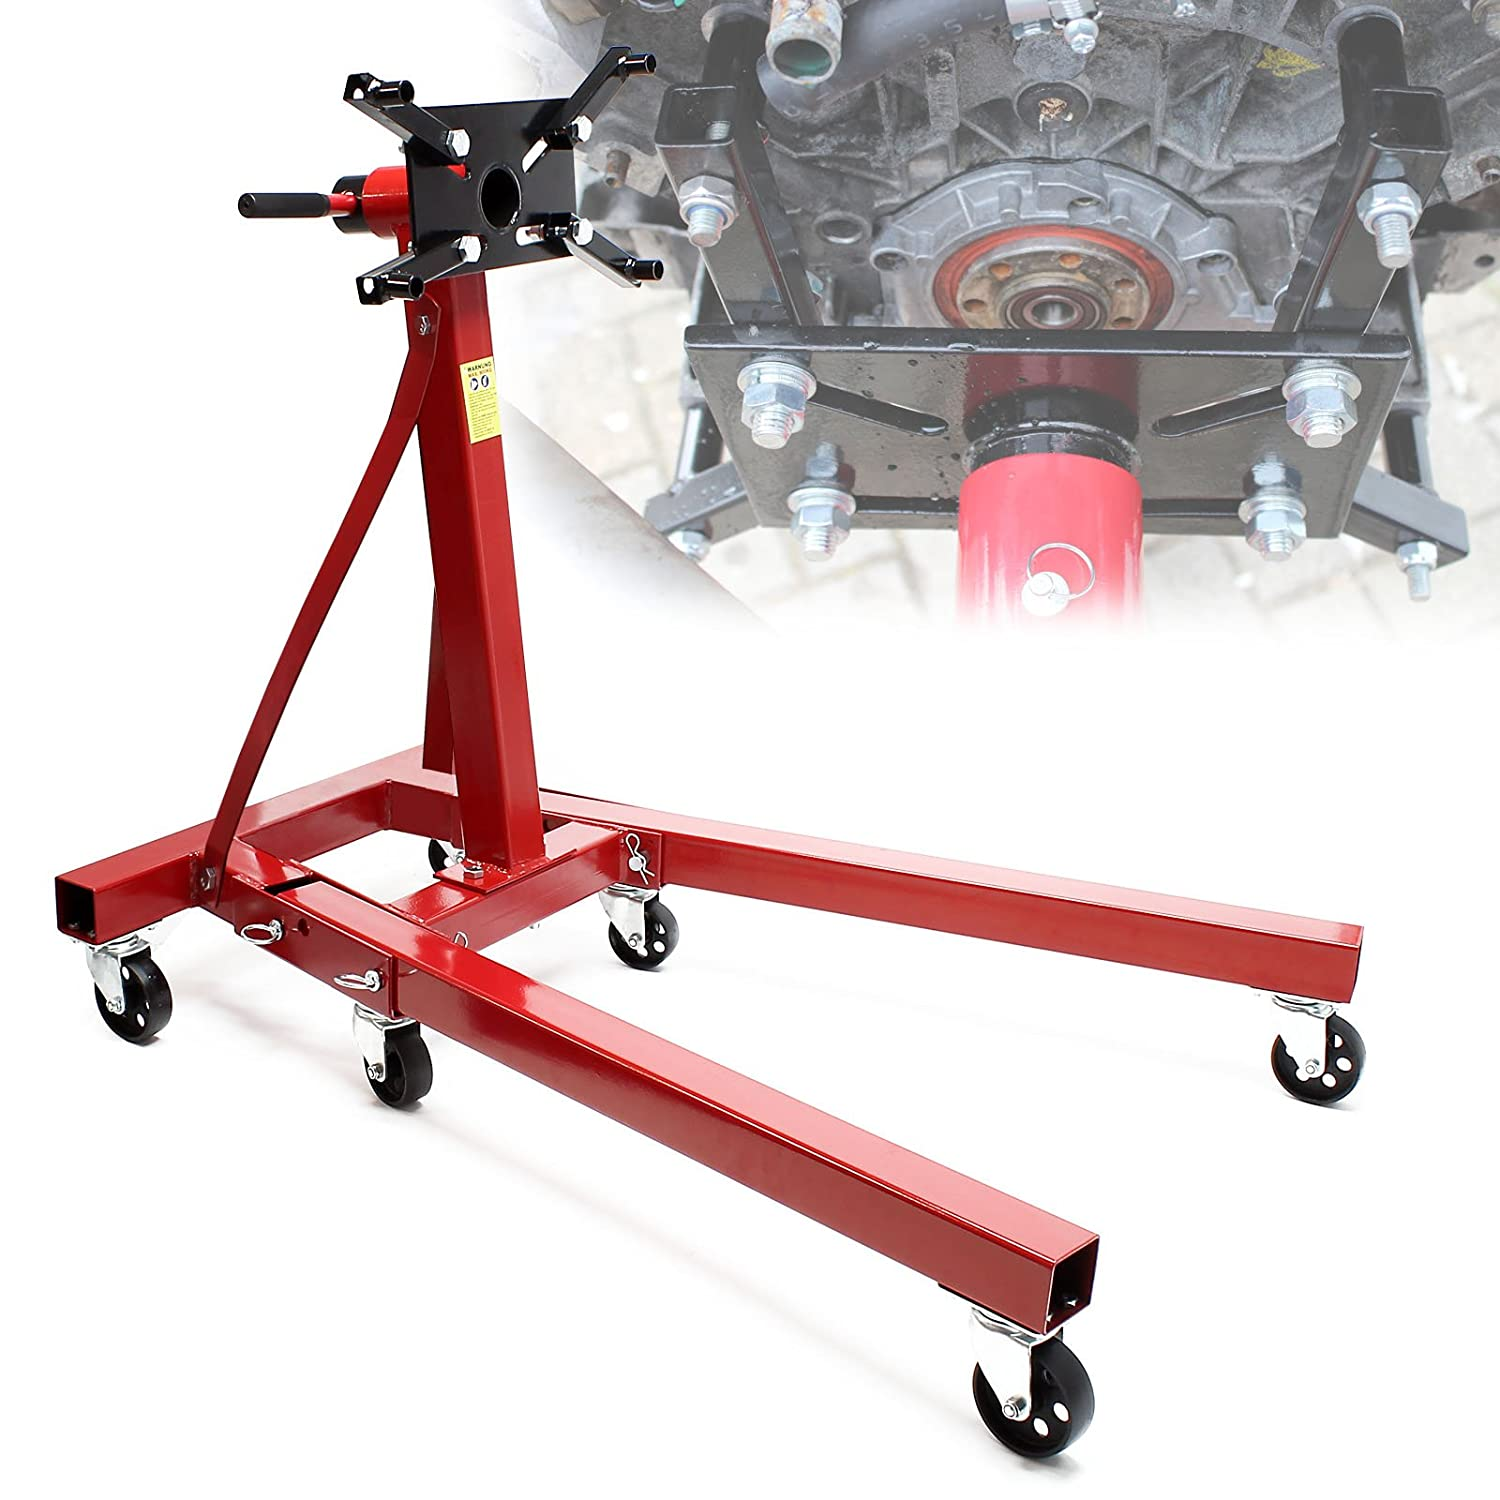 Wiltec Engine stand engine mounting support 900 kg